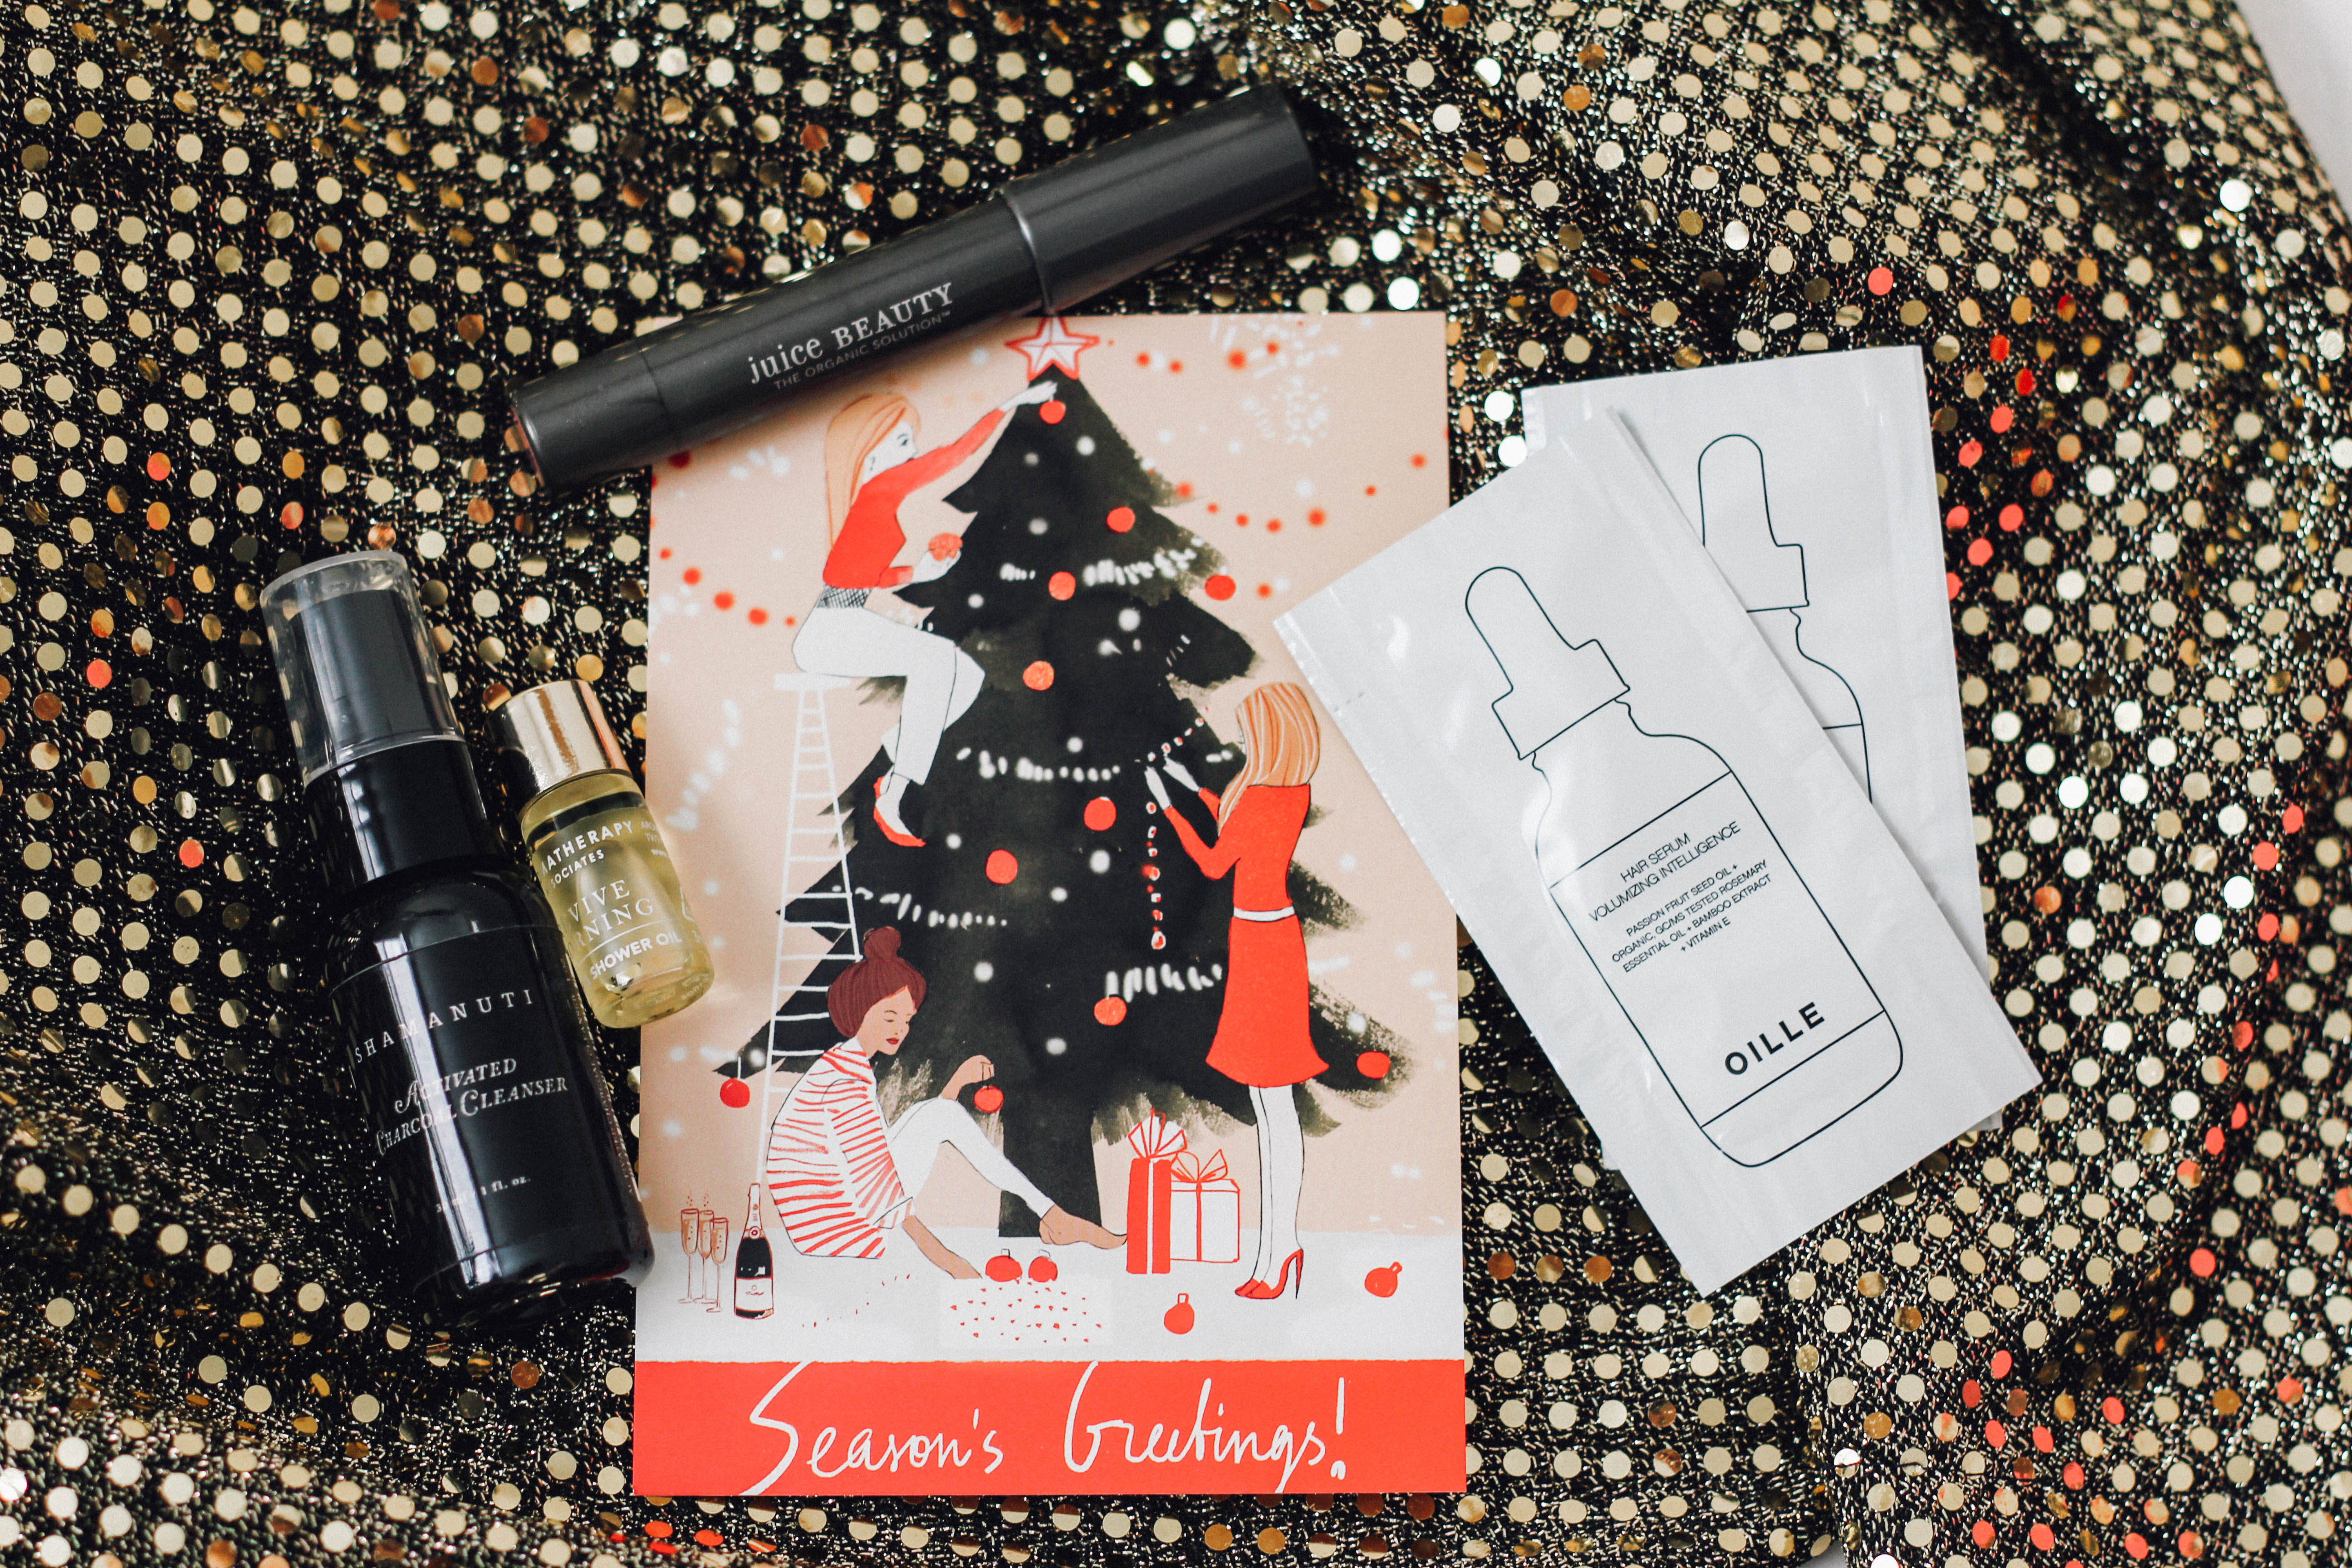 Petit Vour December 2016 Beauty Box